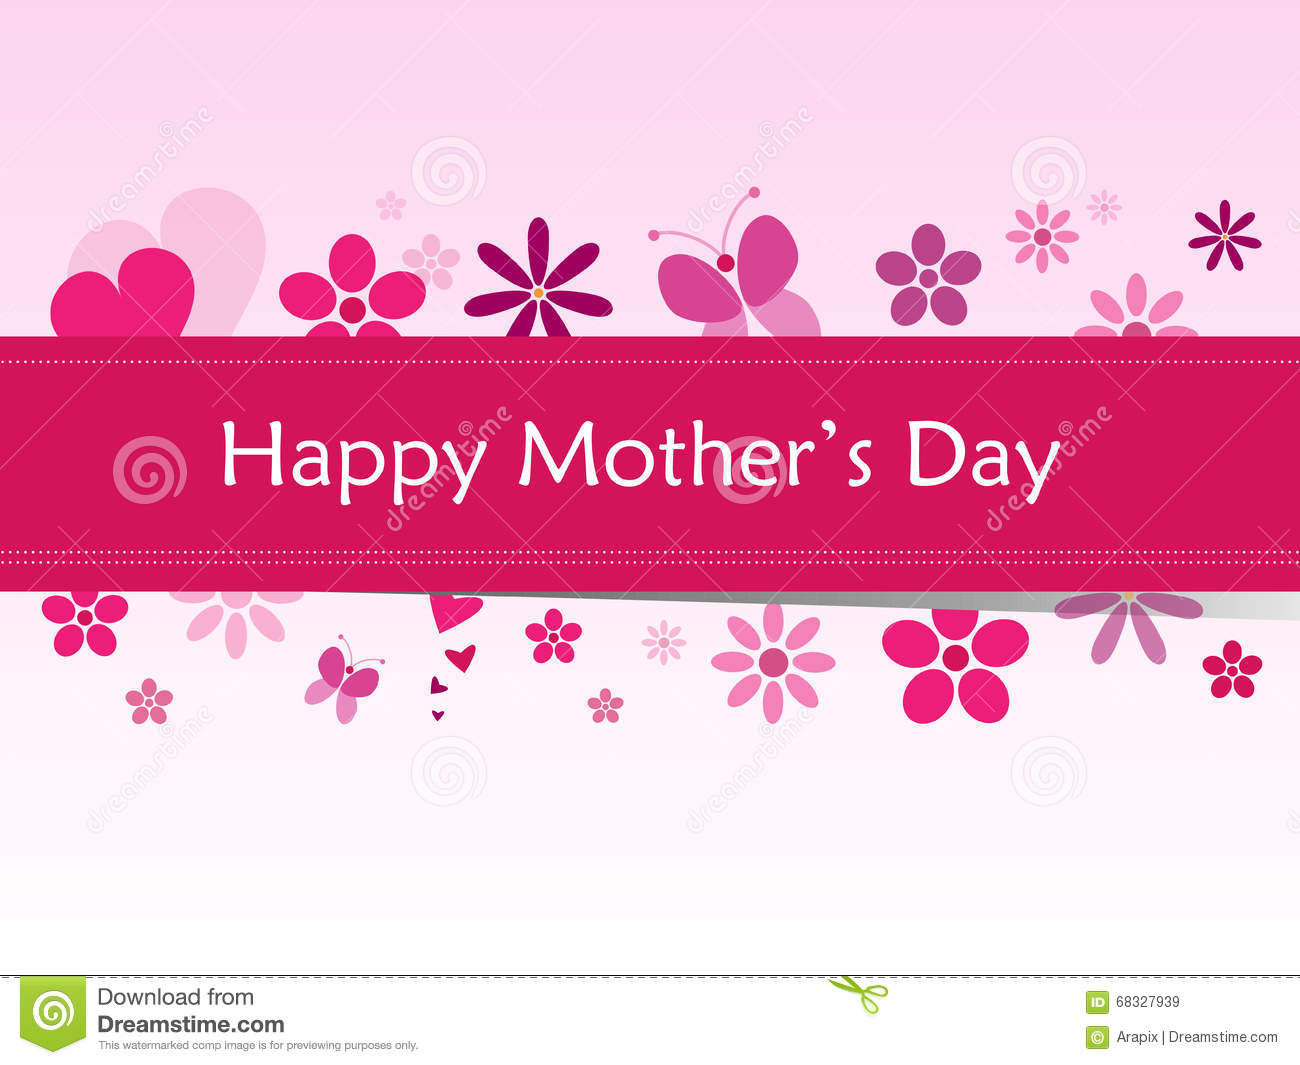 Happy Mother's Day Stock Vector - Image: 68327939